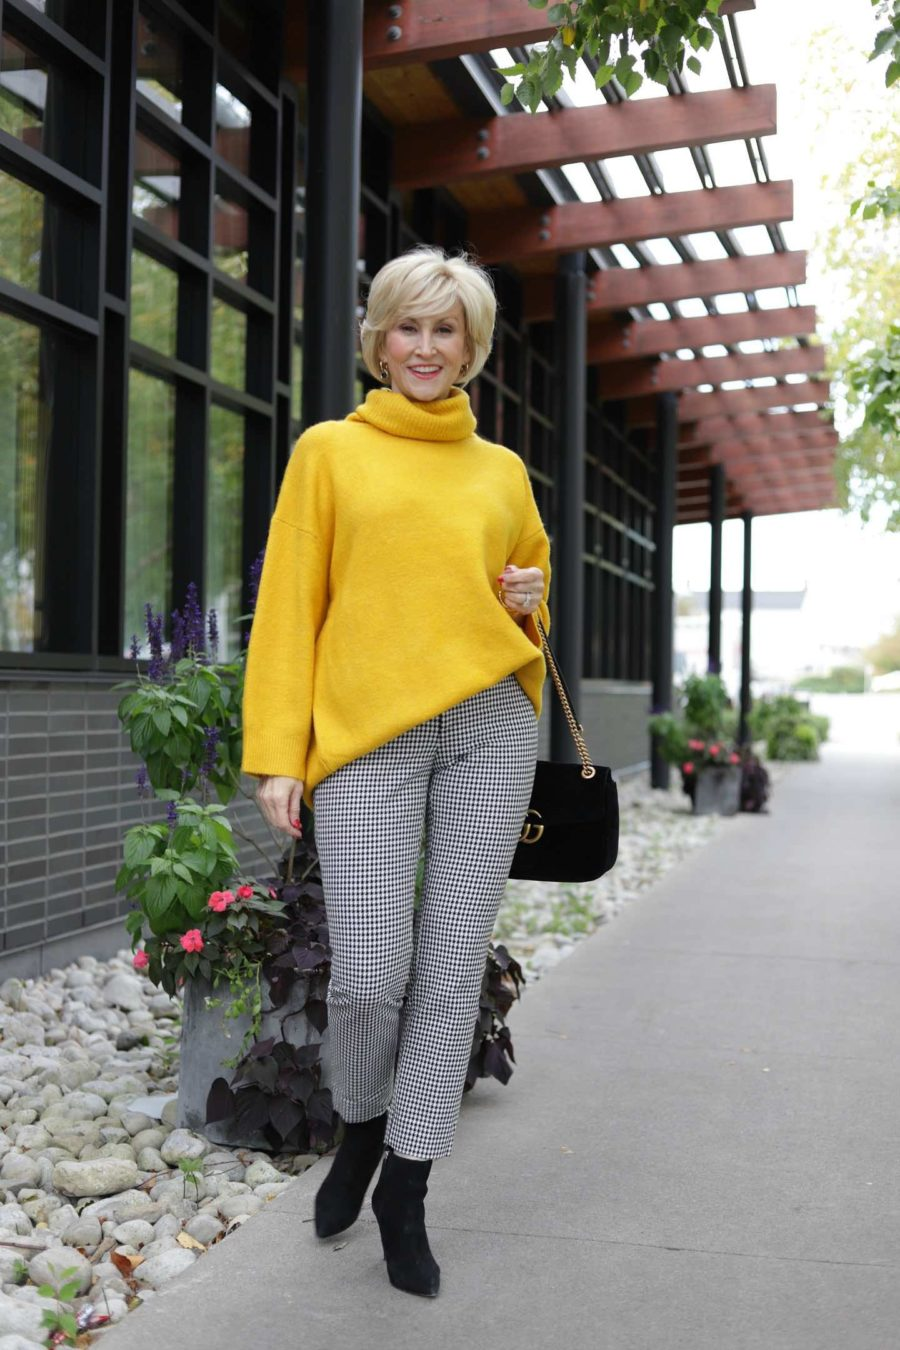 Women's oversized turtleneck sweater with check cropped pants worn by Deborah Boland |Fabulous After 40